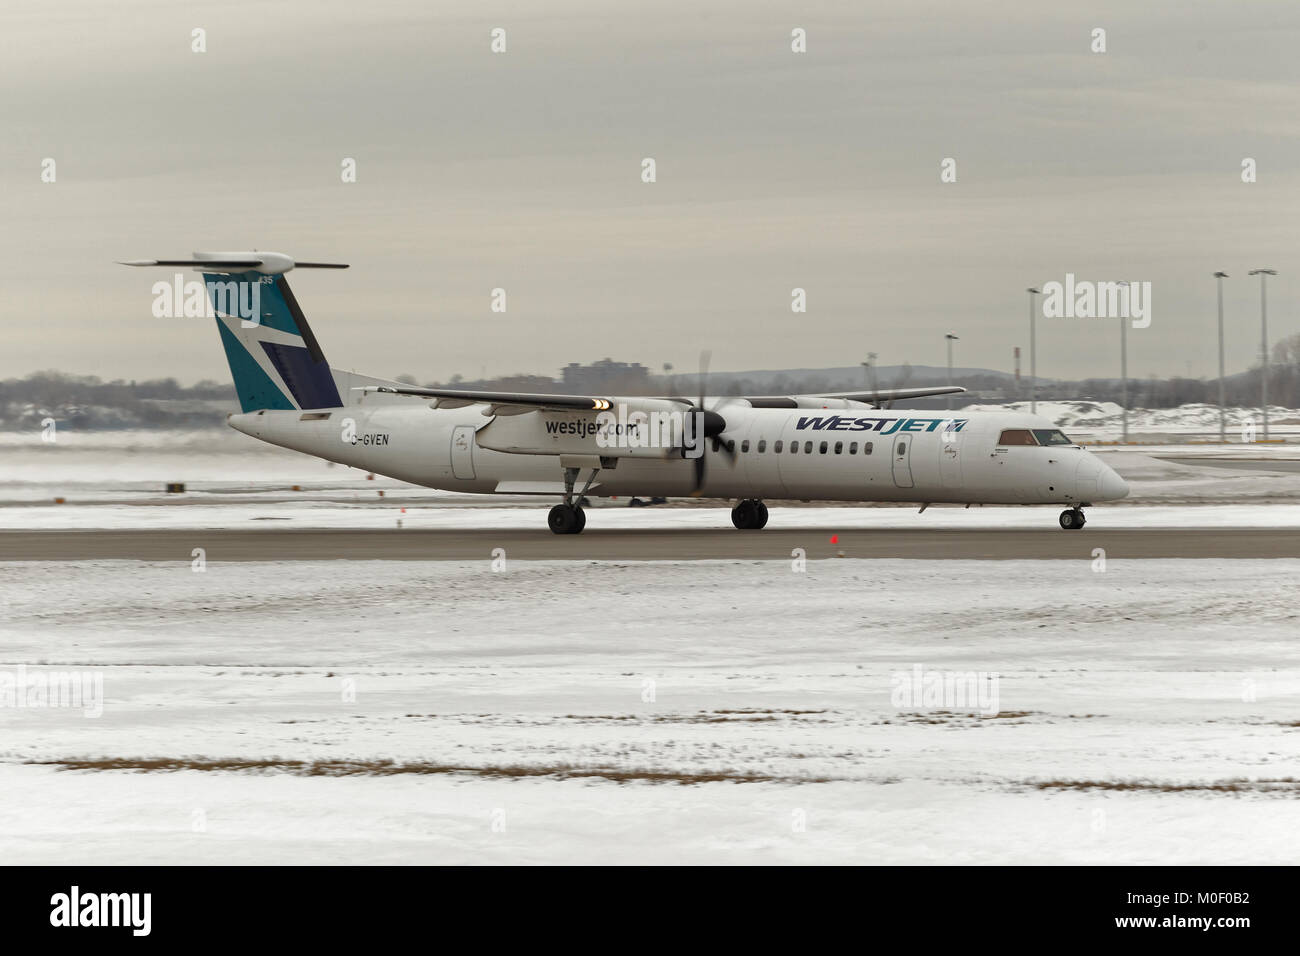 A WestJet Encore ready for take off at the YUL International airport in Dorval, Canada - Stock Image